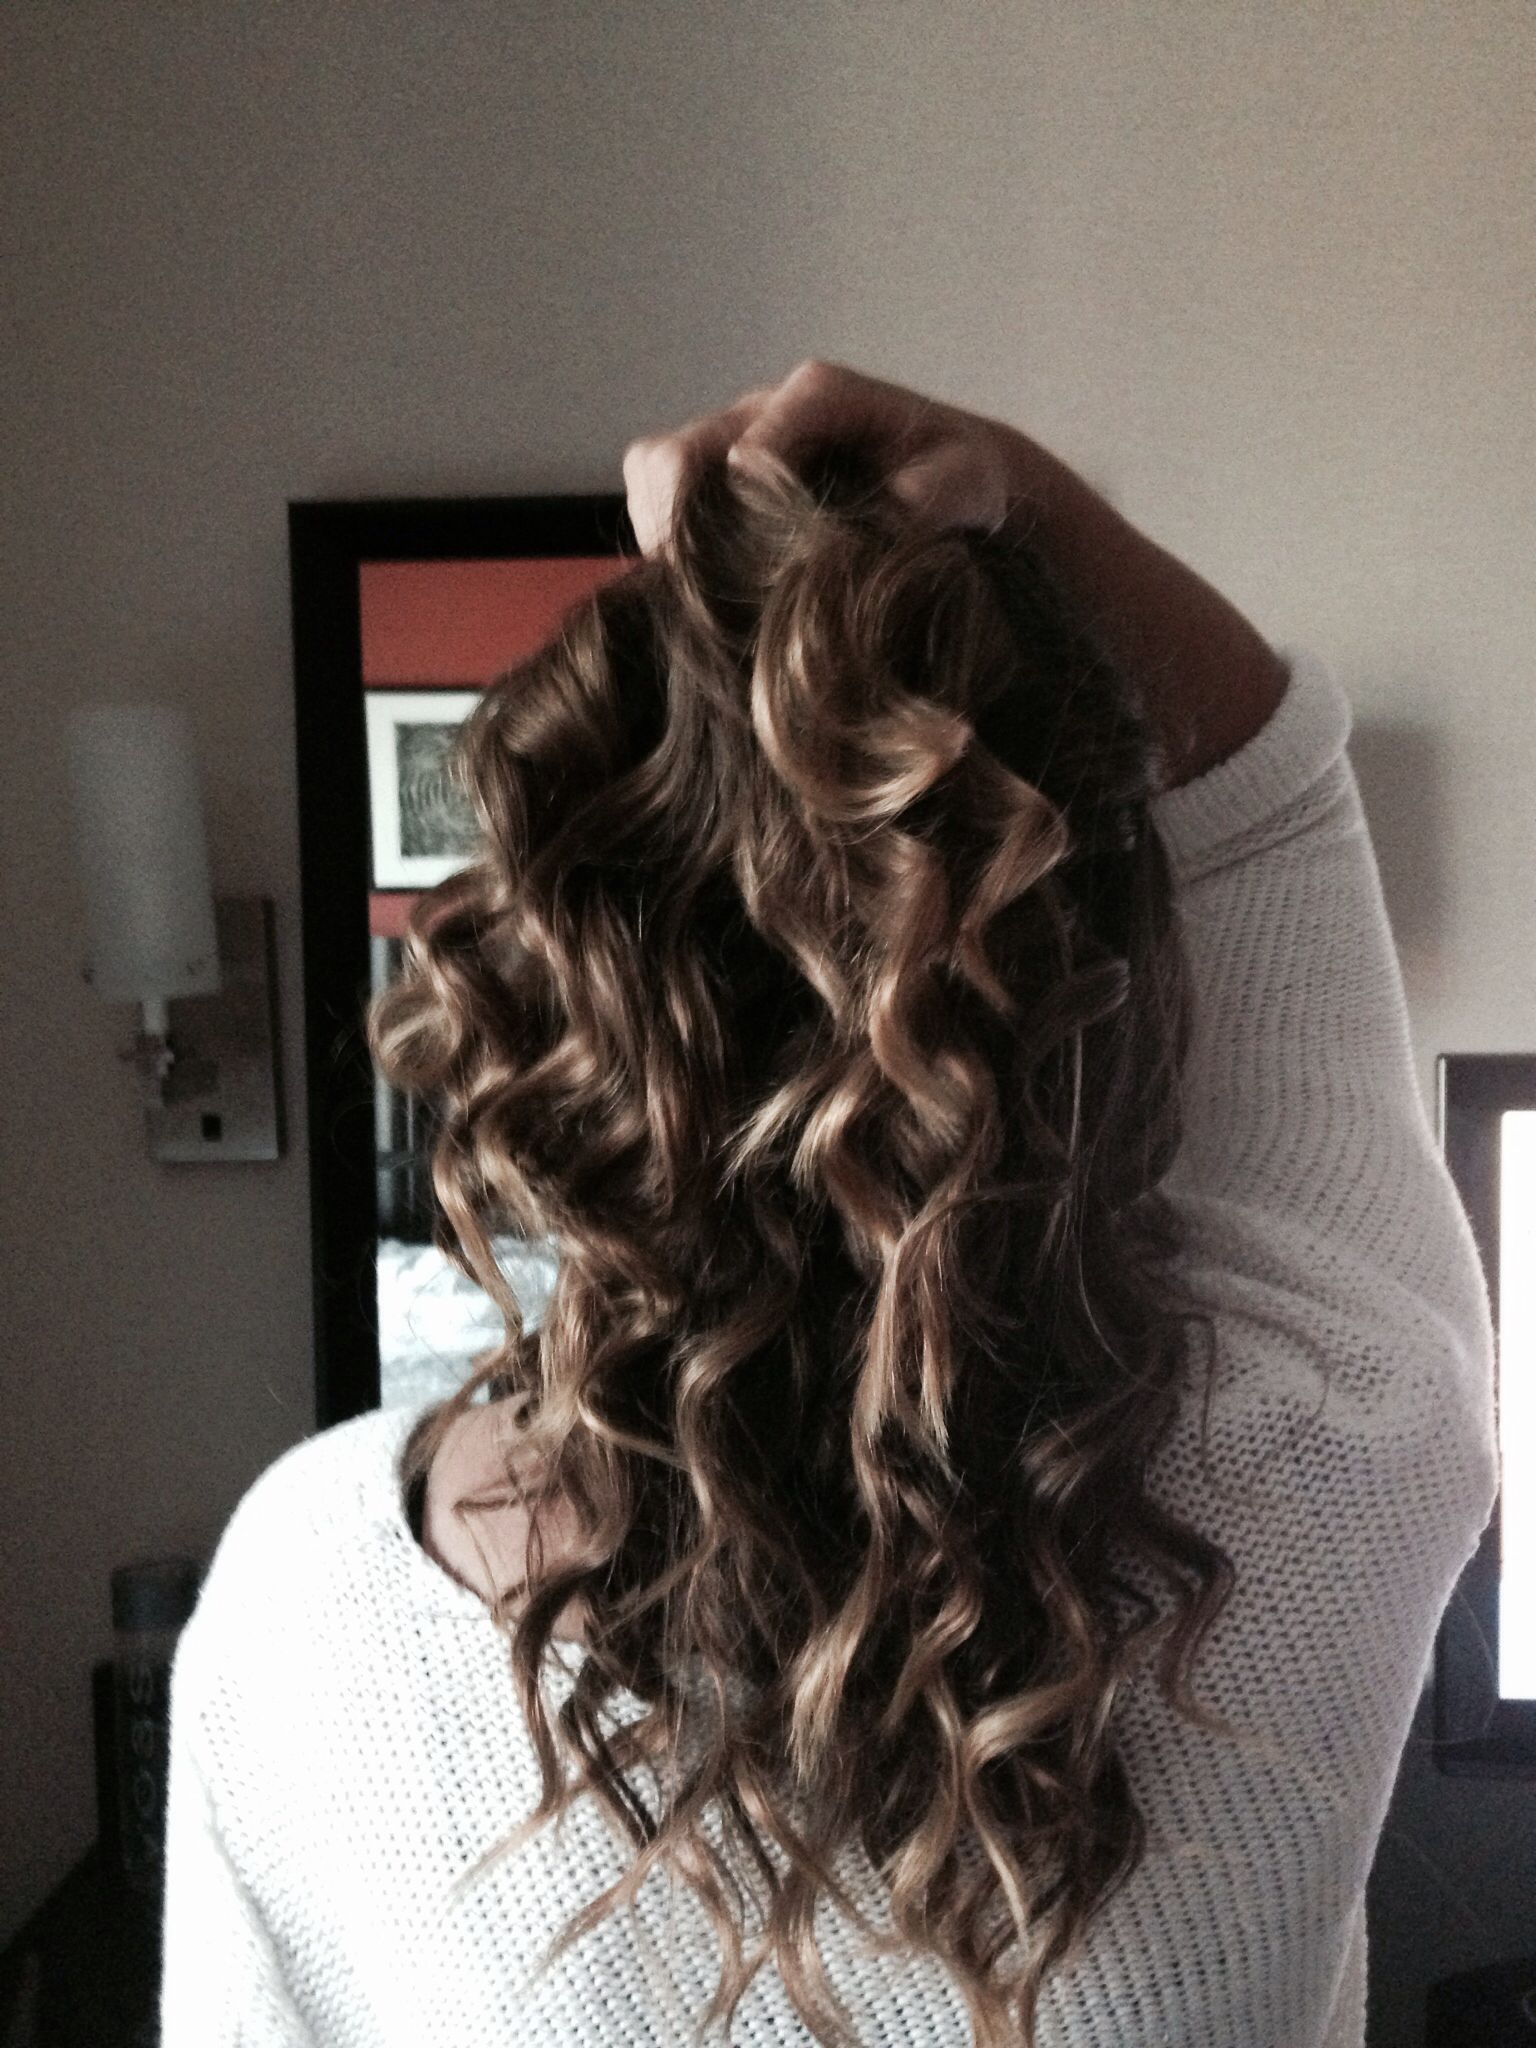 Curly hair cute easy and different pinterest